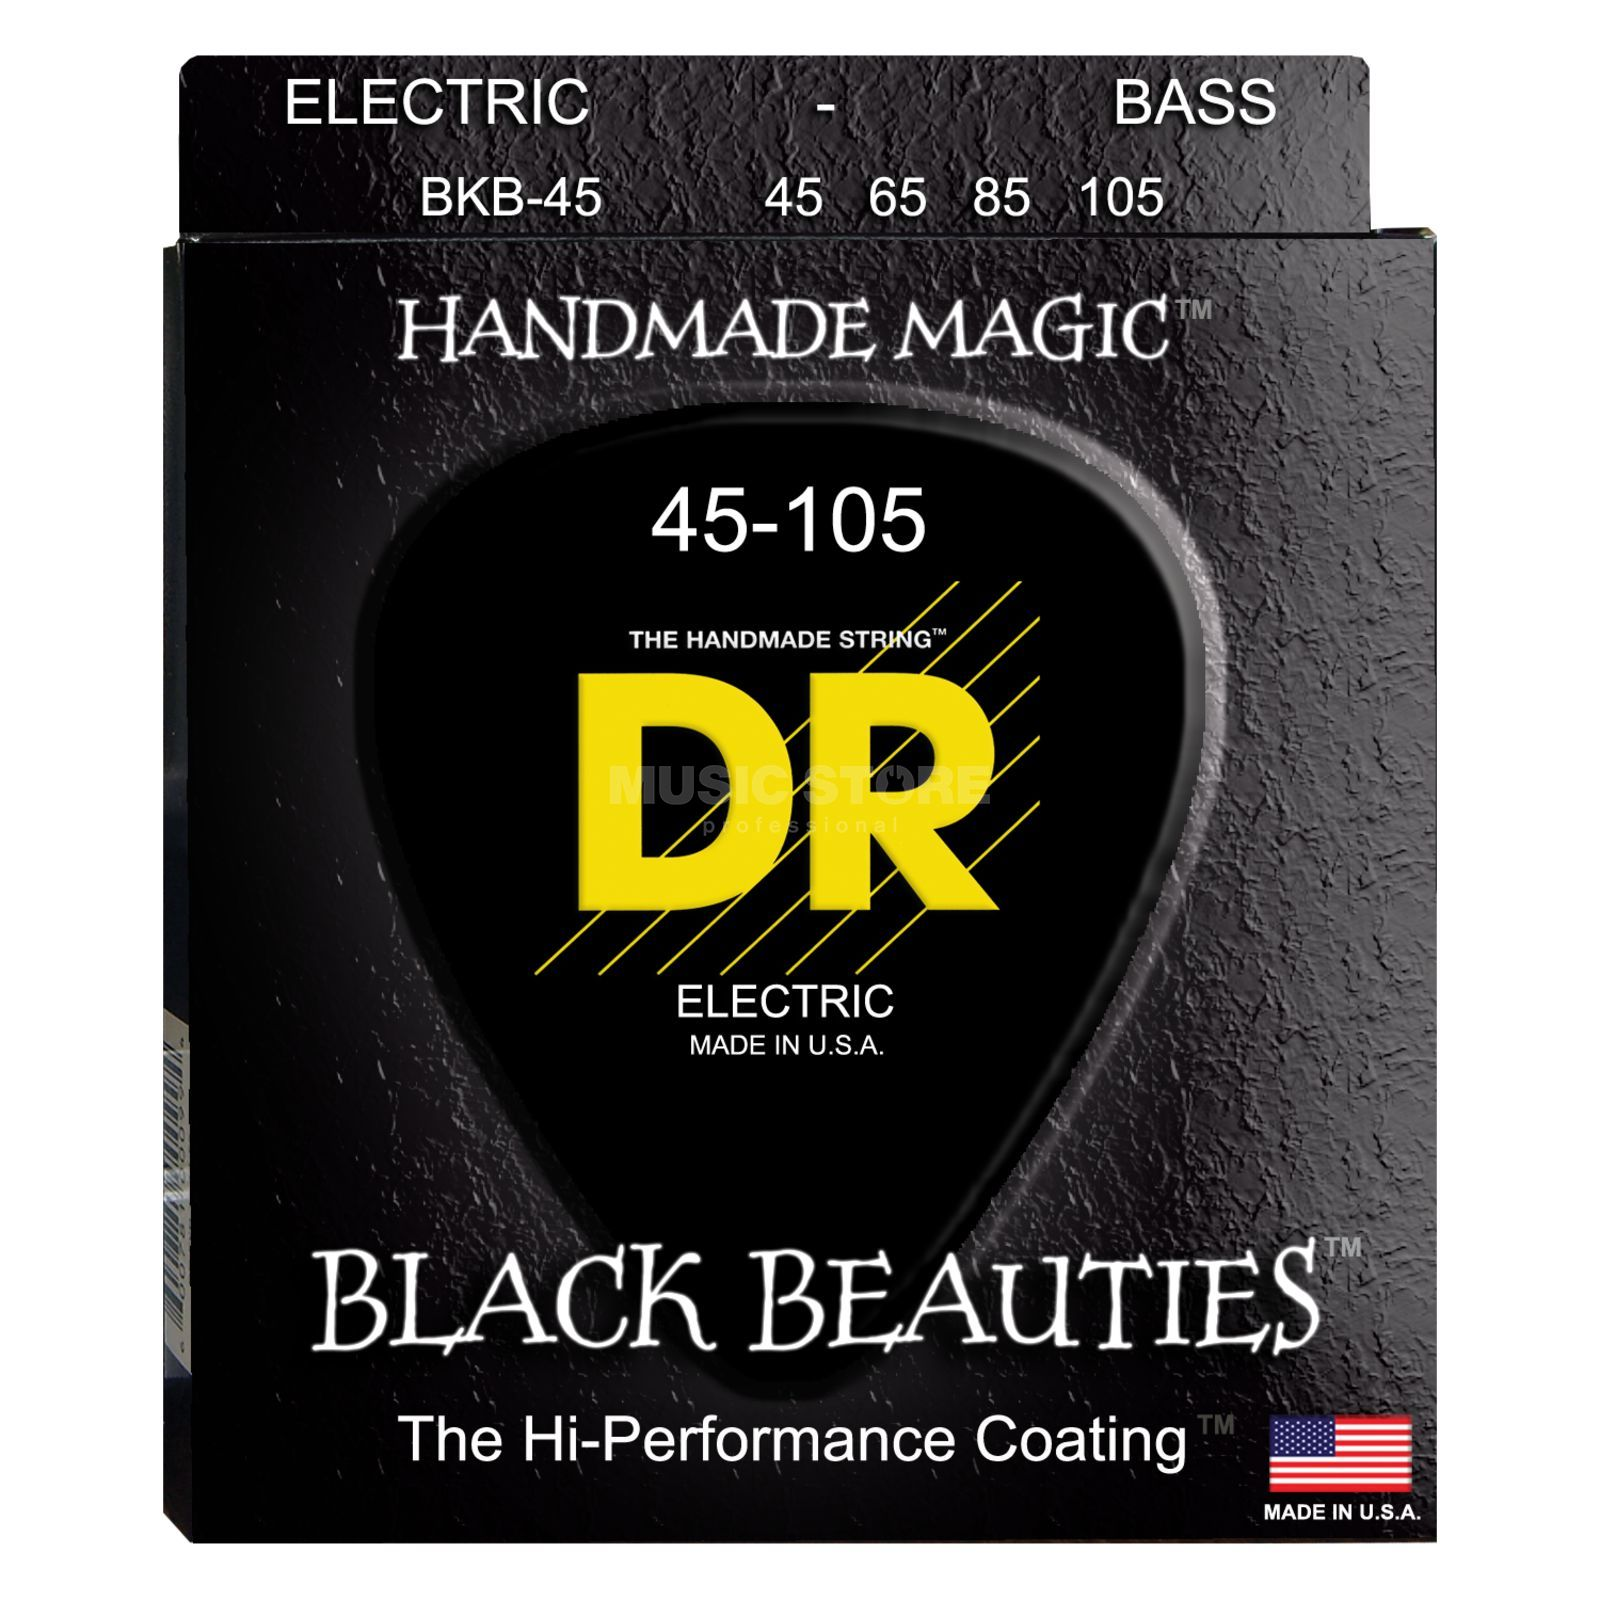 DR 4er Bass 45-105 Extra-Life Black Beauties BKB-45 Product Image